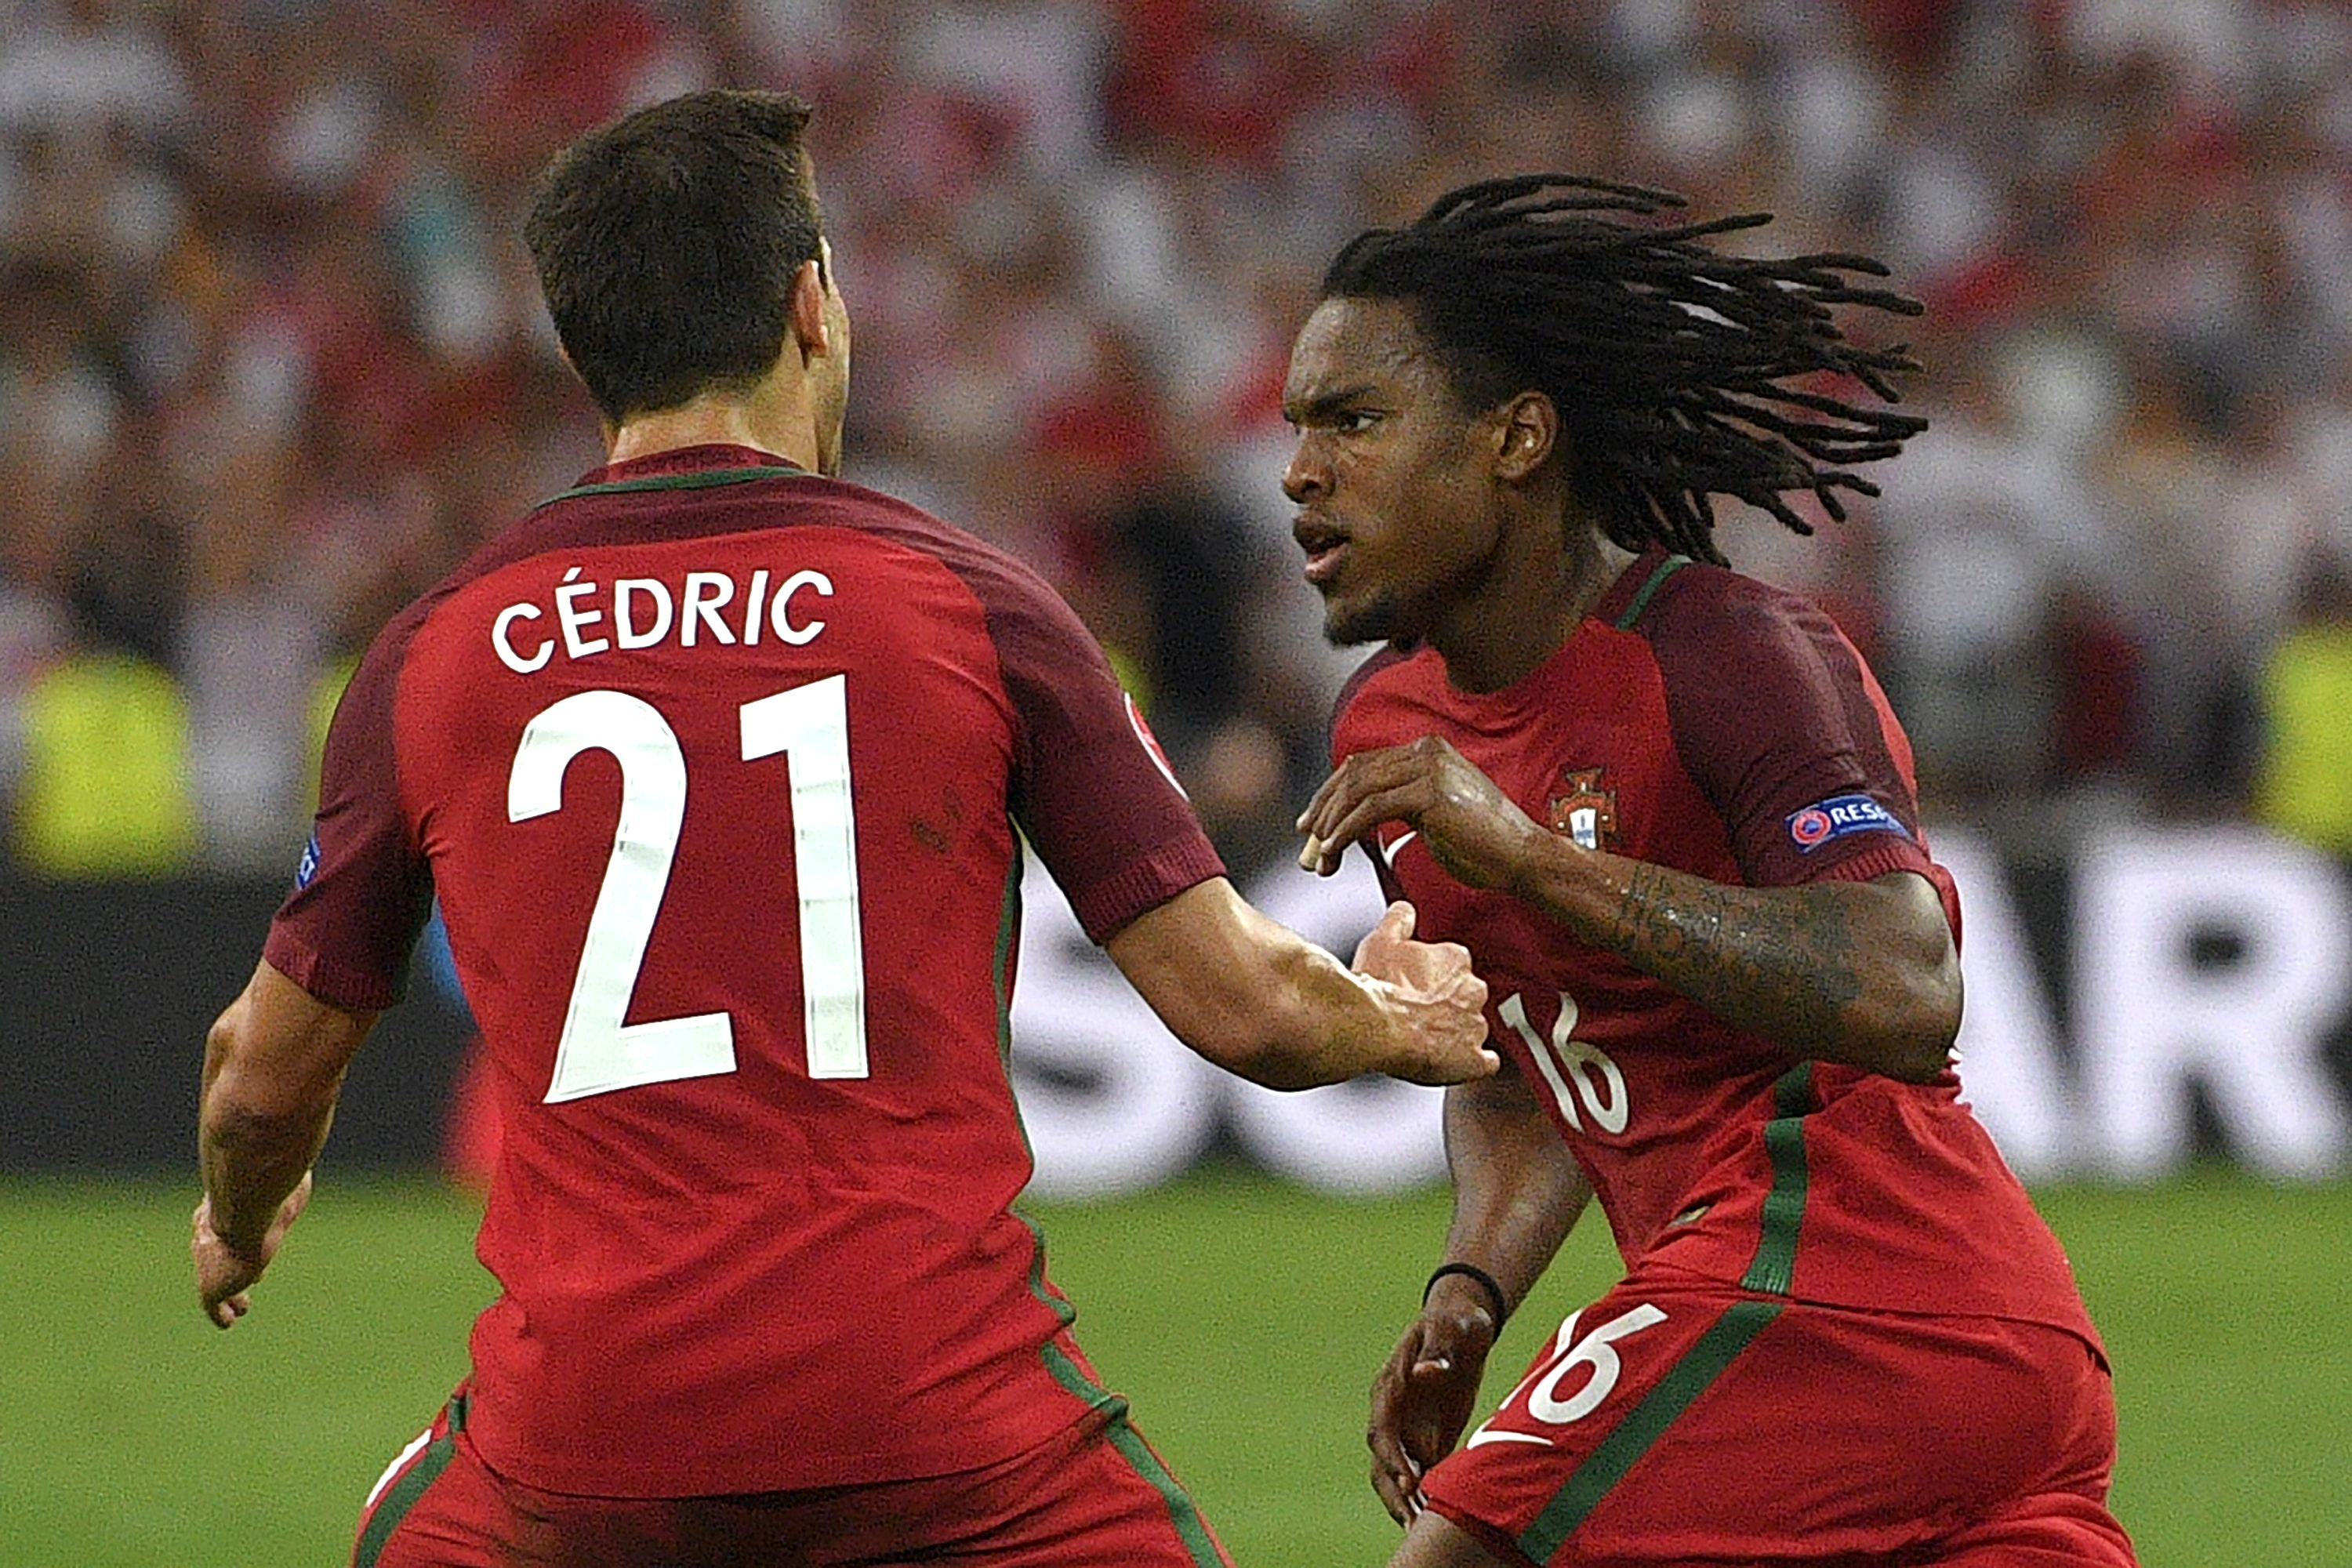 Manchester United made an error in losing out on Renato Sanches, admits Ryan Giggs